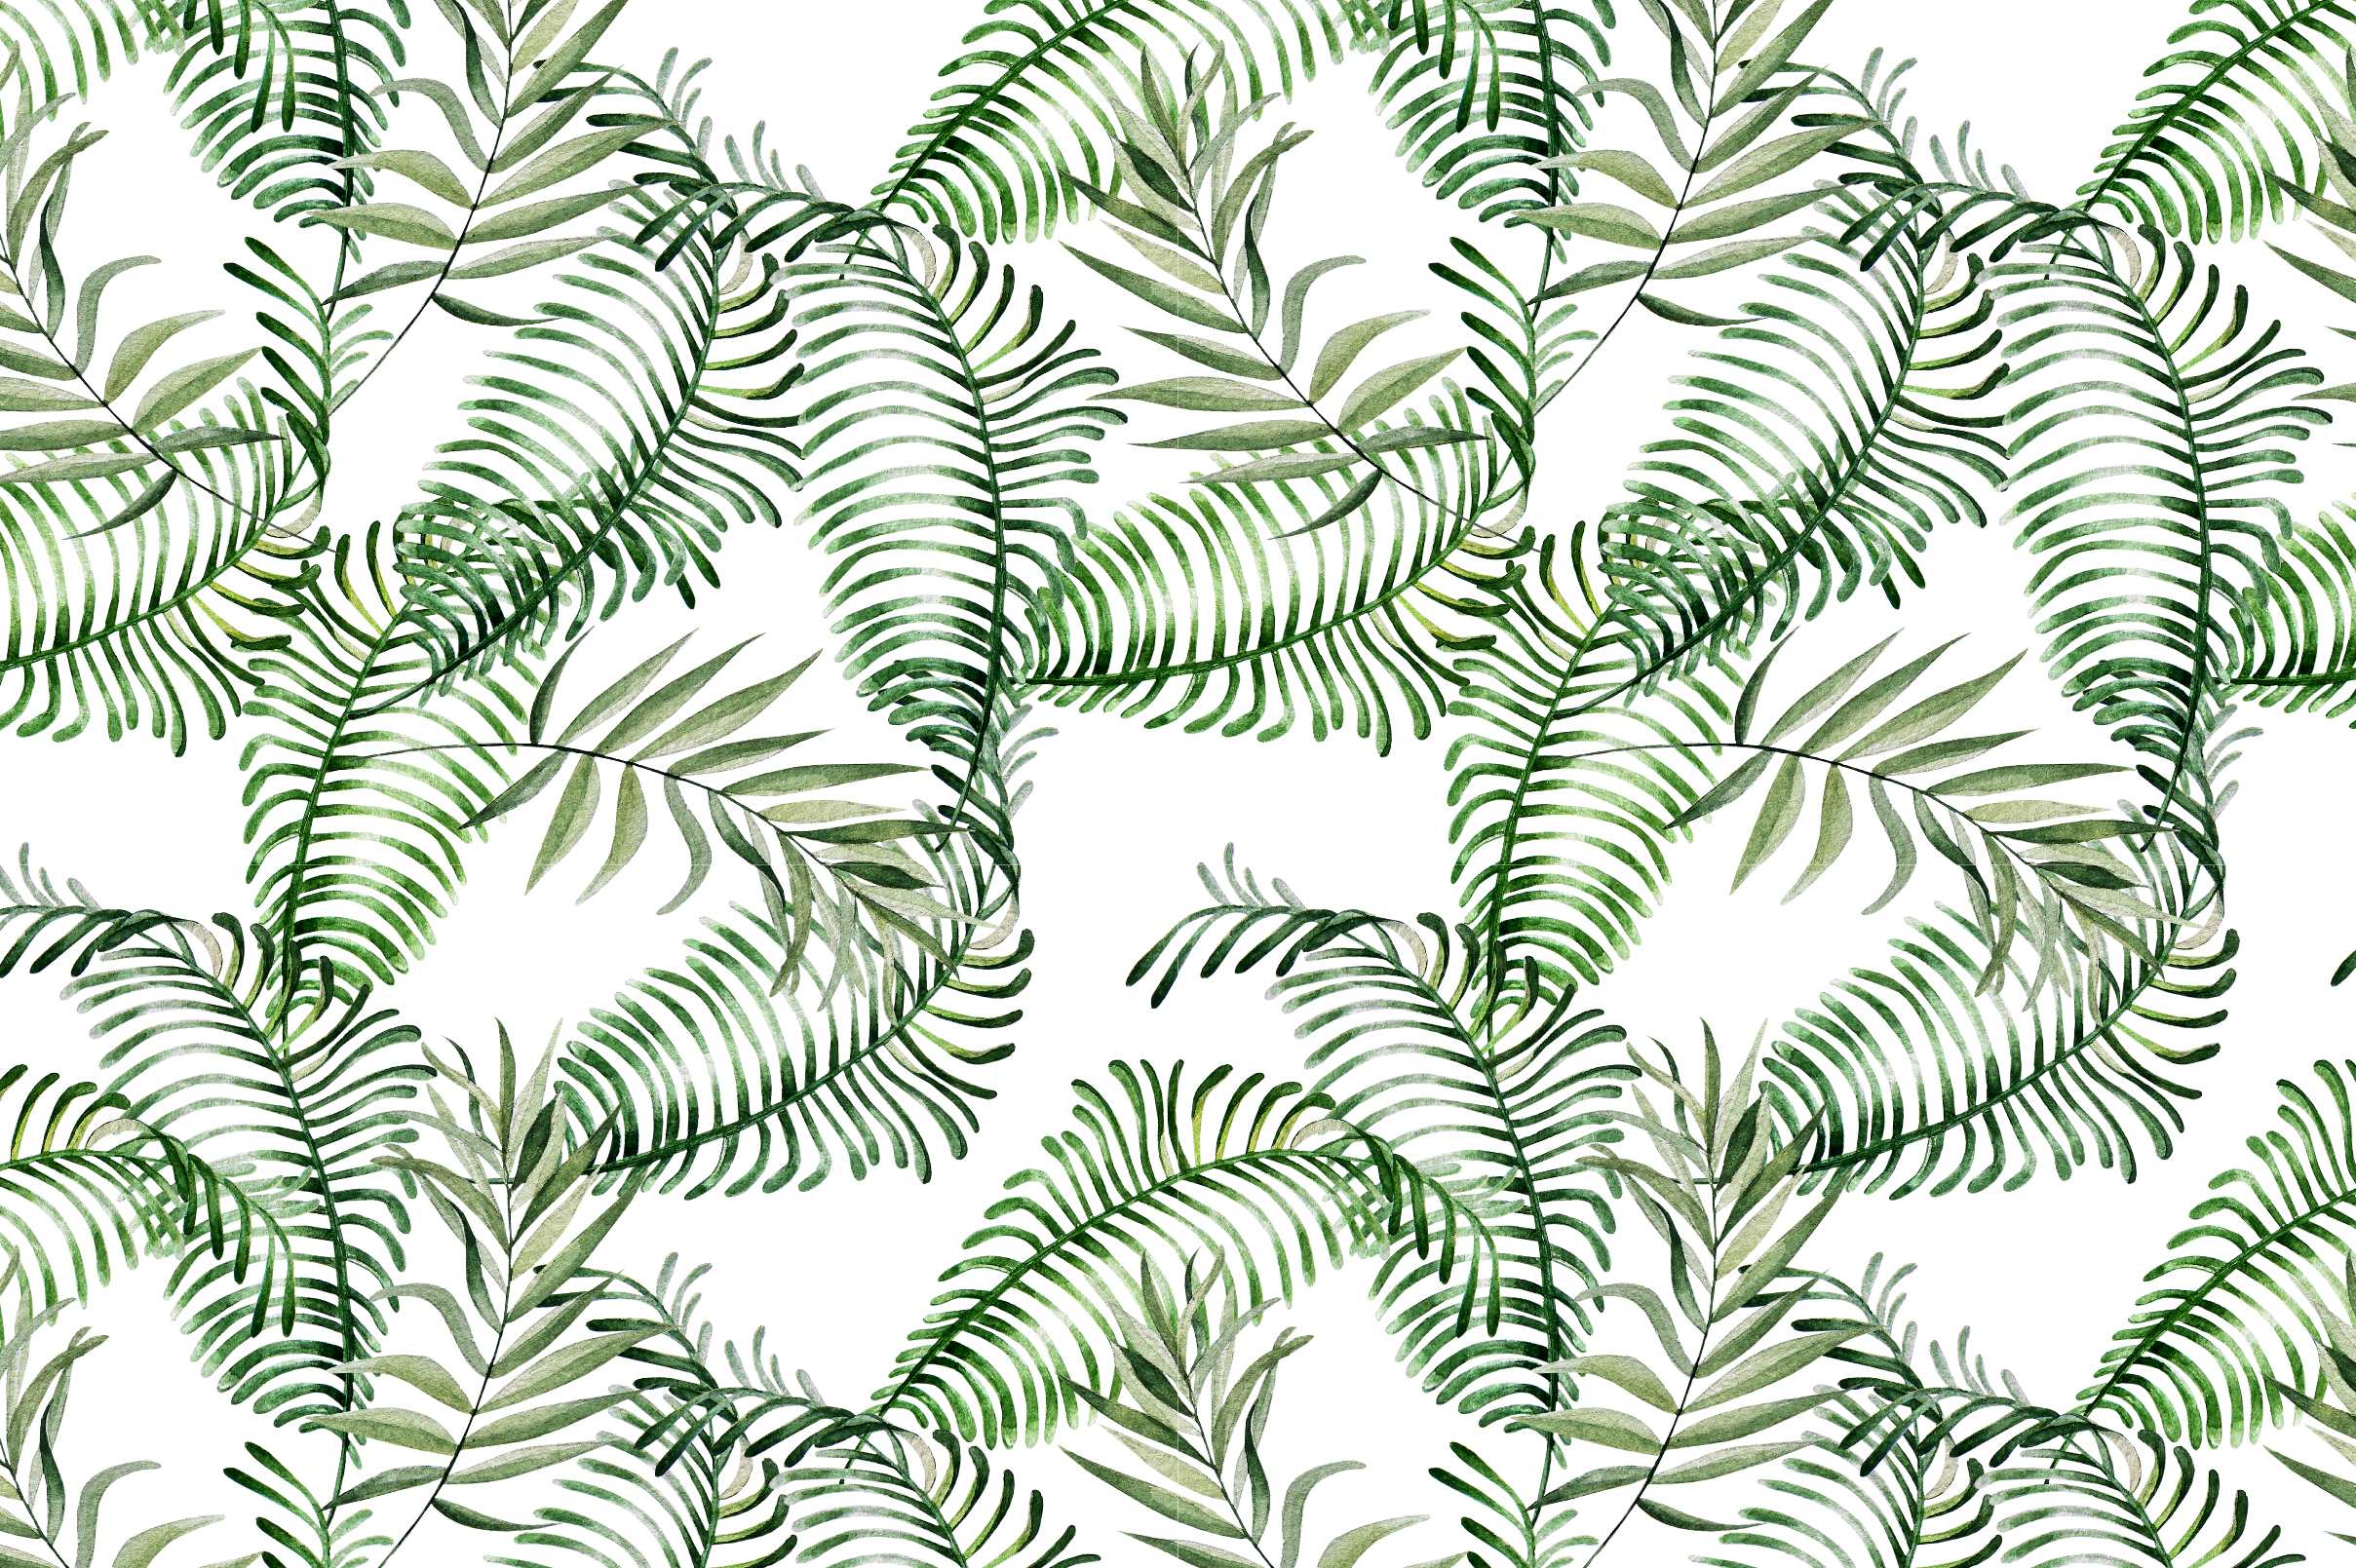 16 Hand Drawn Watercolor Pattern example image 14